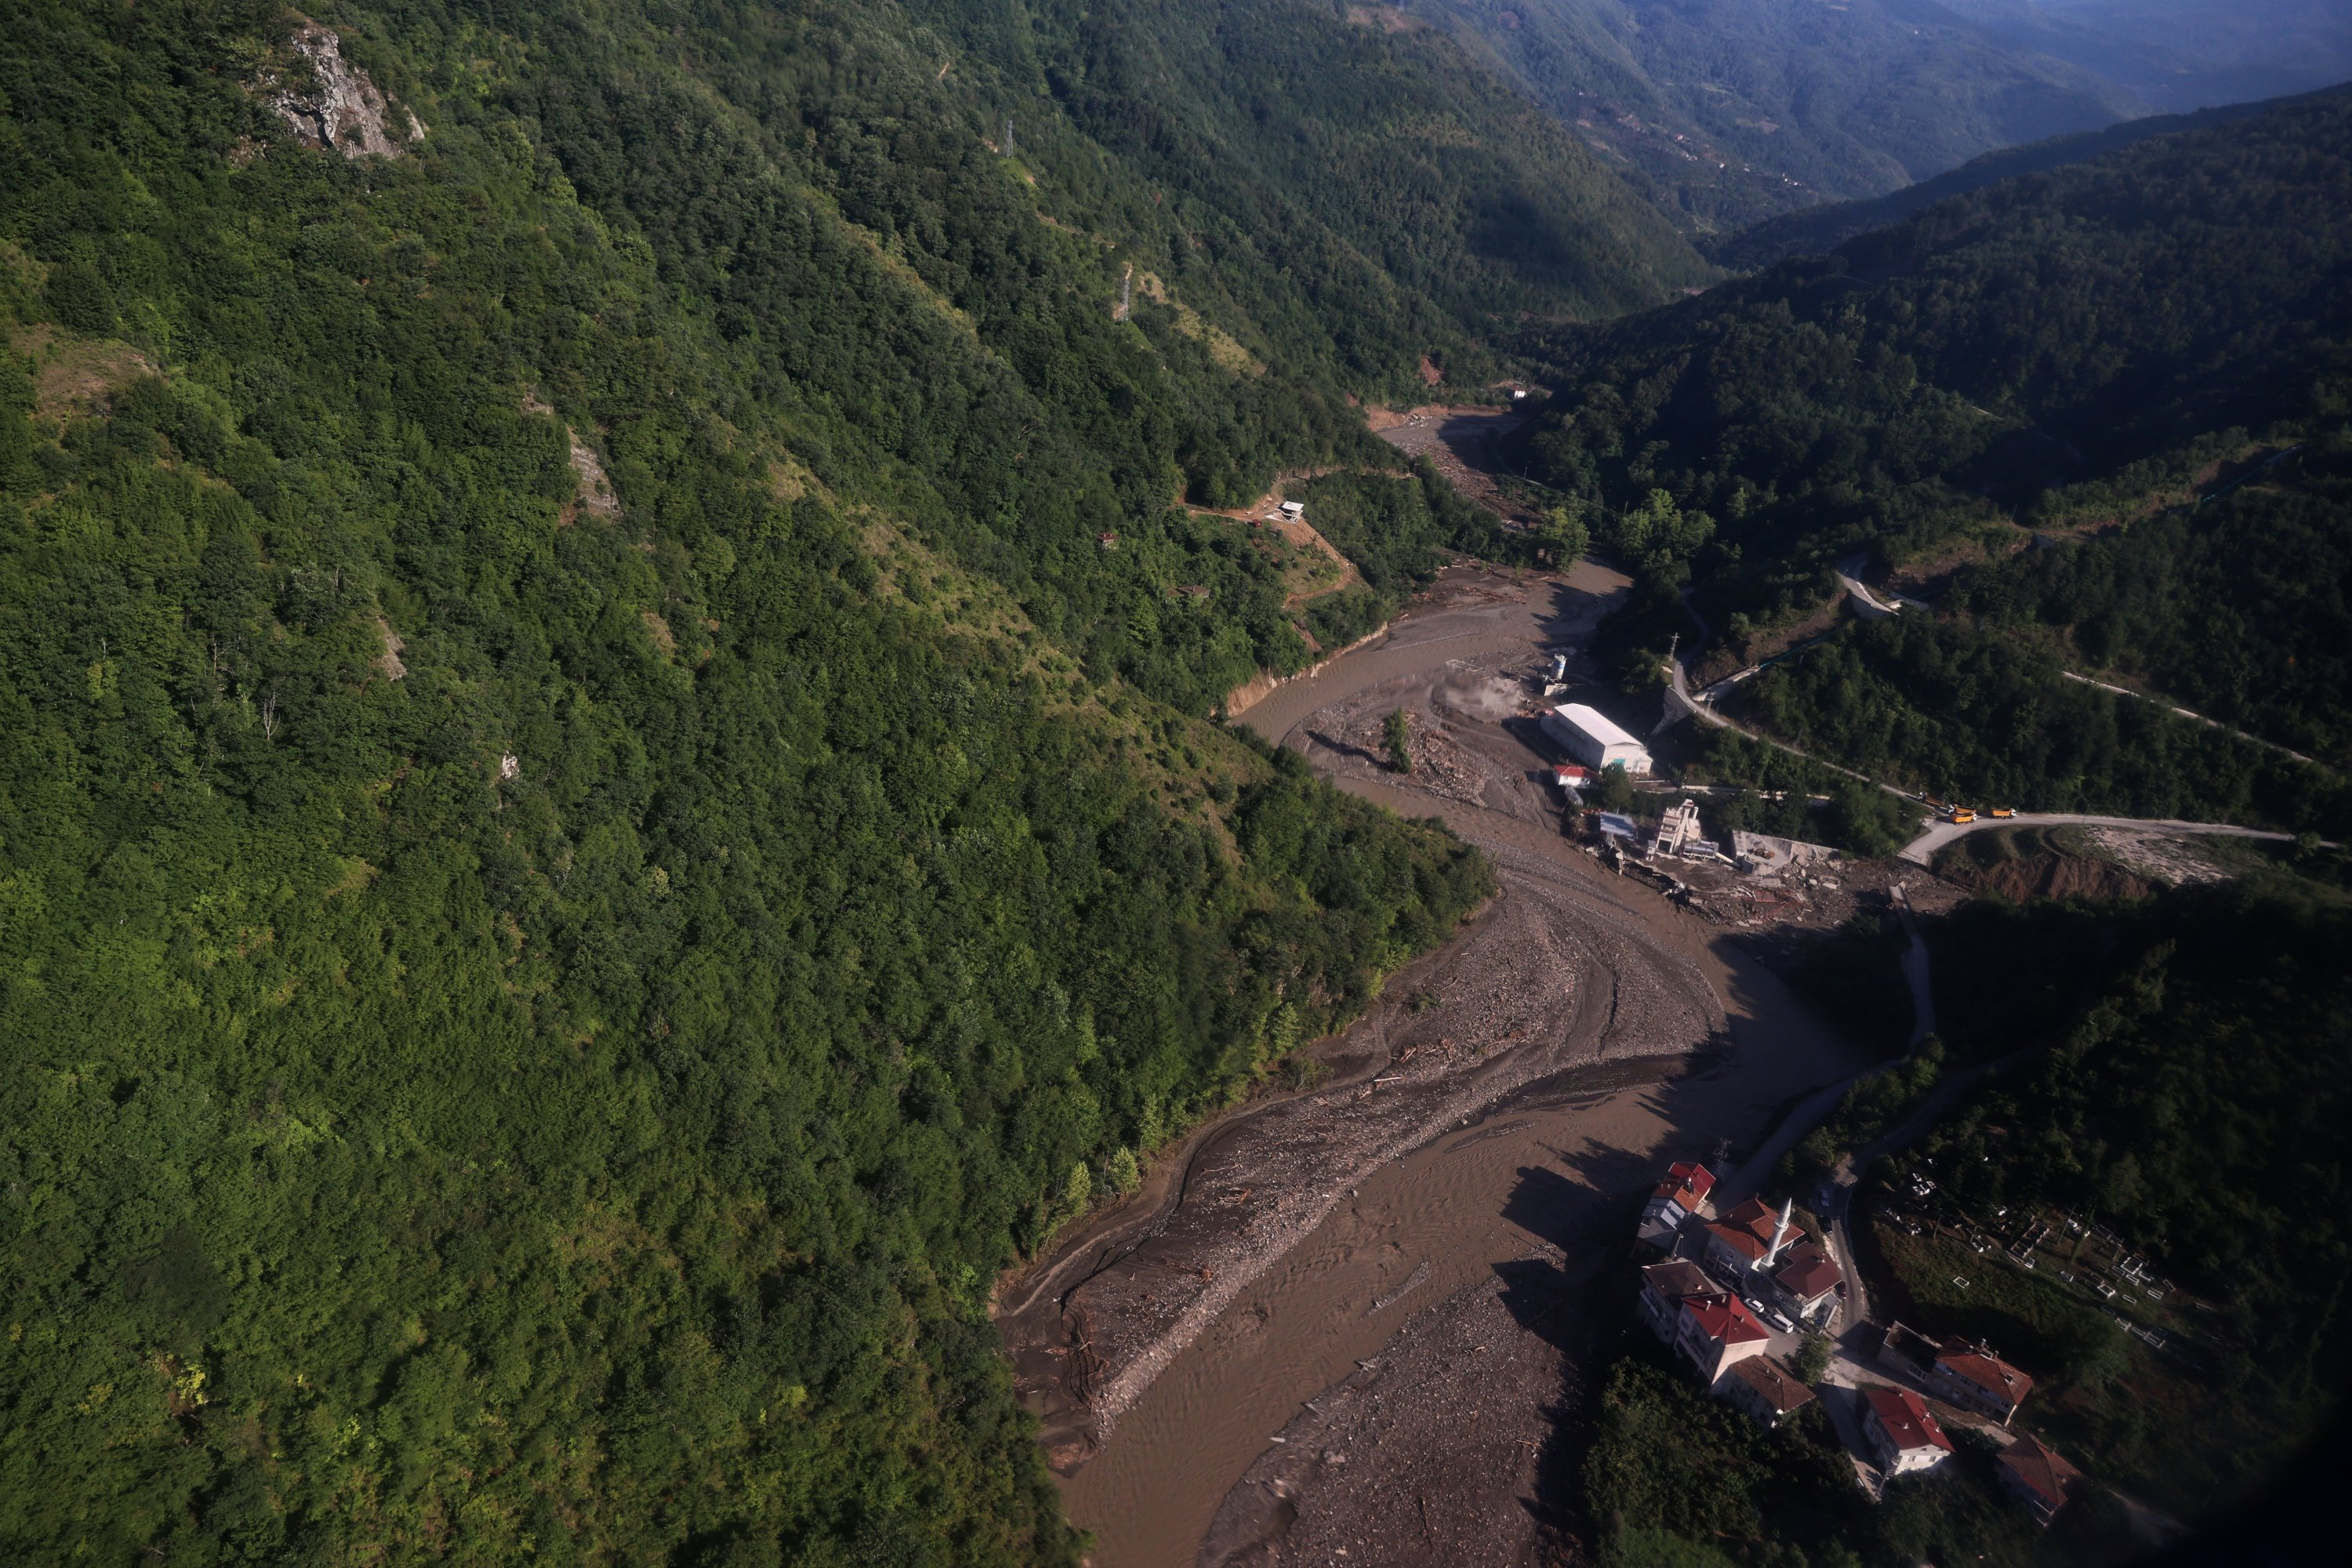 The Ezine Stream and the hydroelectric power plant as viewed from the air, Bozkurt district, Kastamonu, Turkey,  Aug. 14, 2021. (AA Photo)